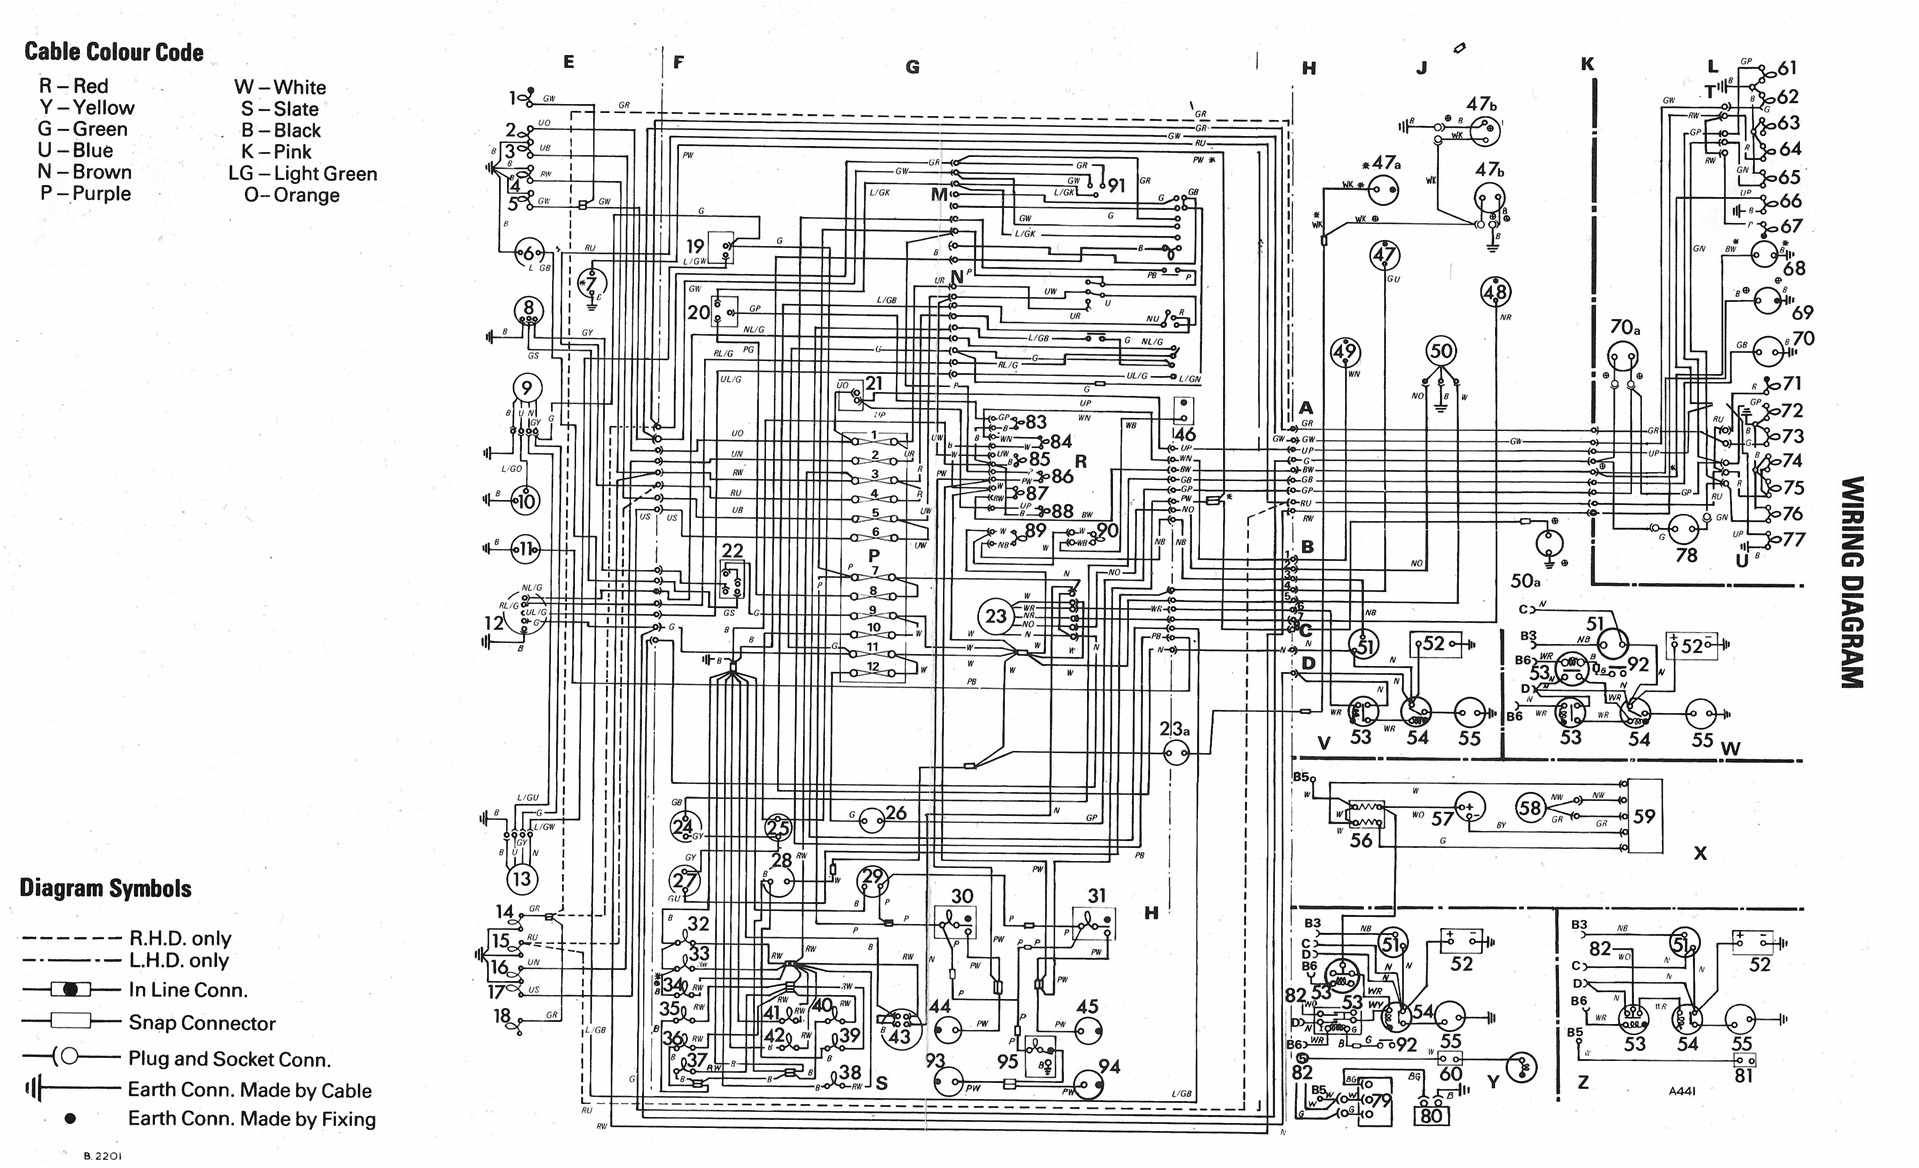 1936 Volkswagen Beetle Engine Diagram Wiring Will Be A Thing 74 Vw Electrical Of Golf Mk1 Projekt 1974 Bug Removal